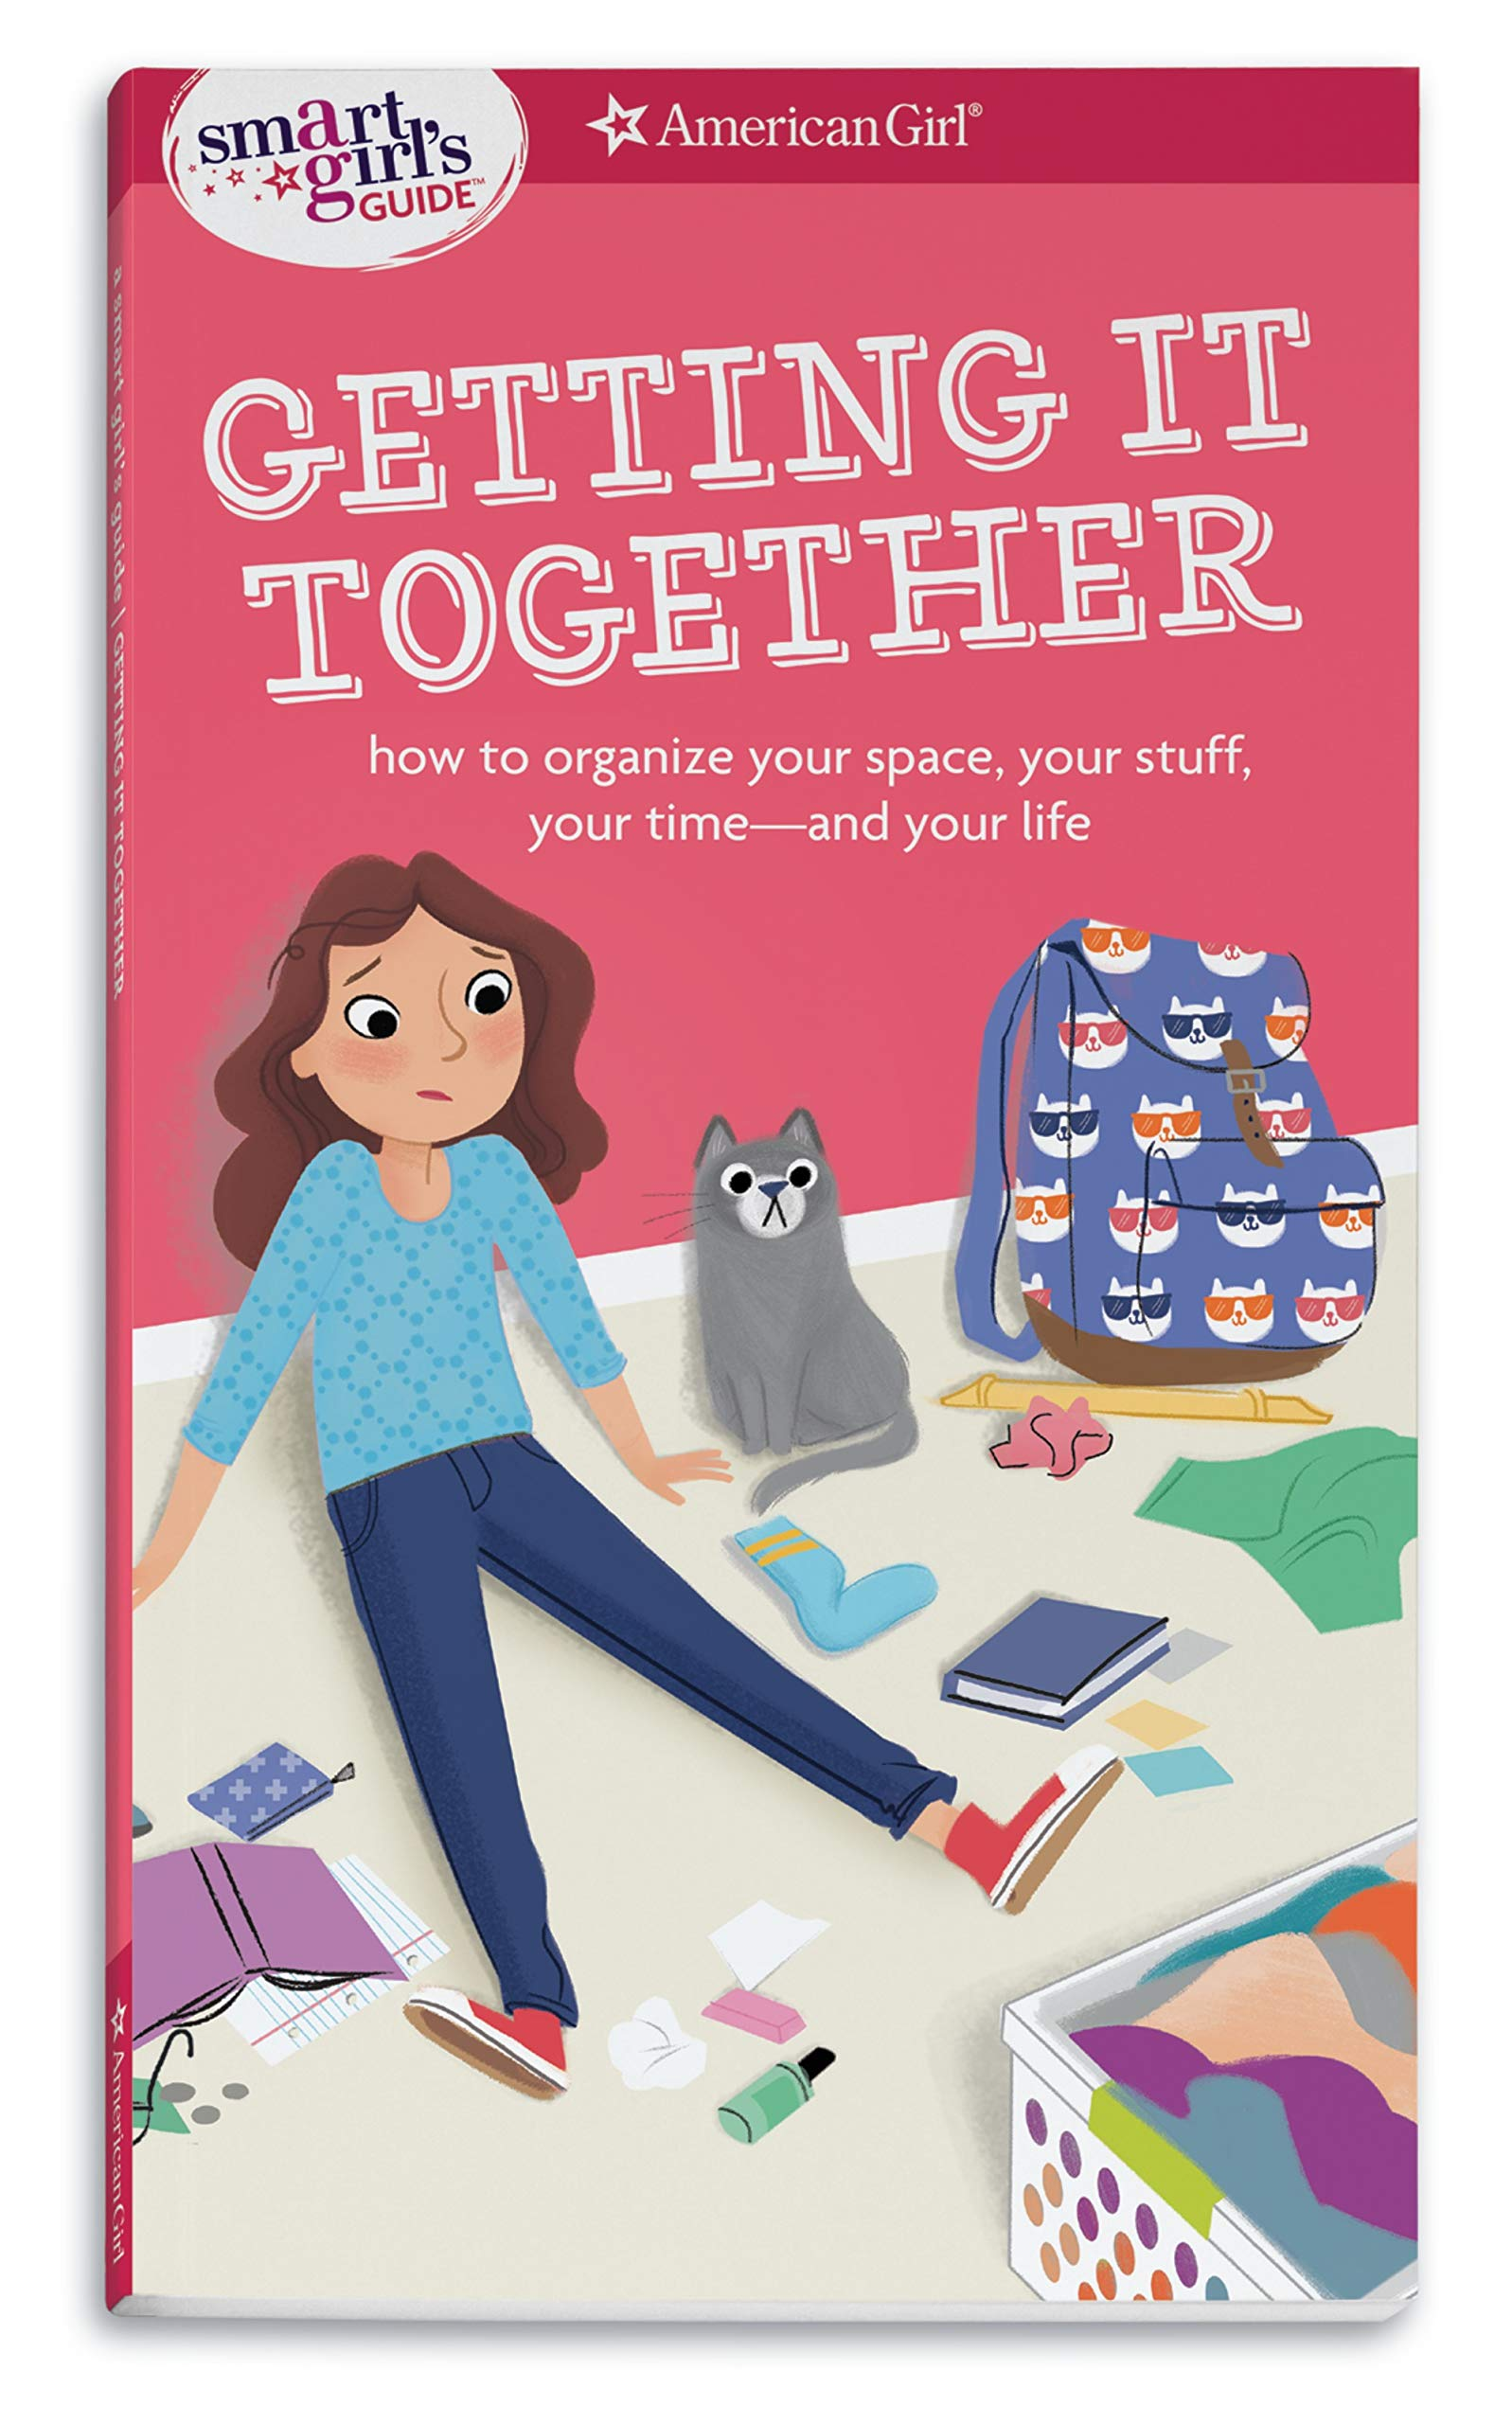 A Smart Girl's Guide: Getting It Together: How to Organize Your Space, Your Stuff, Your Time--and Your Life (Smart Girl's Guides) pdf